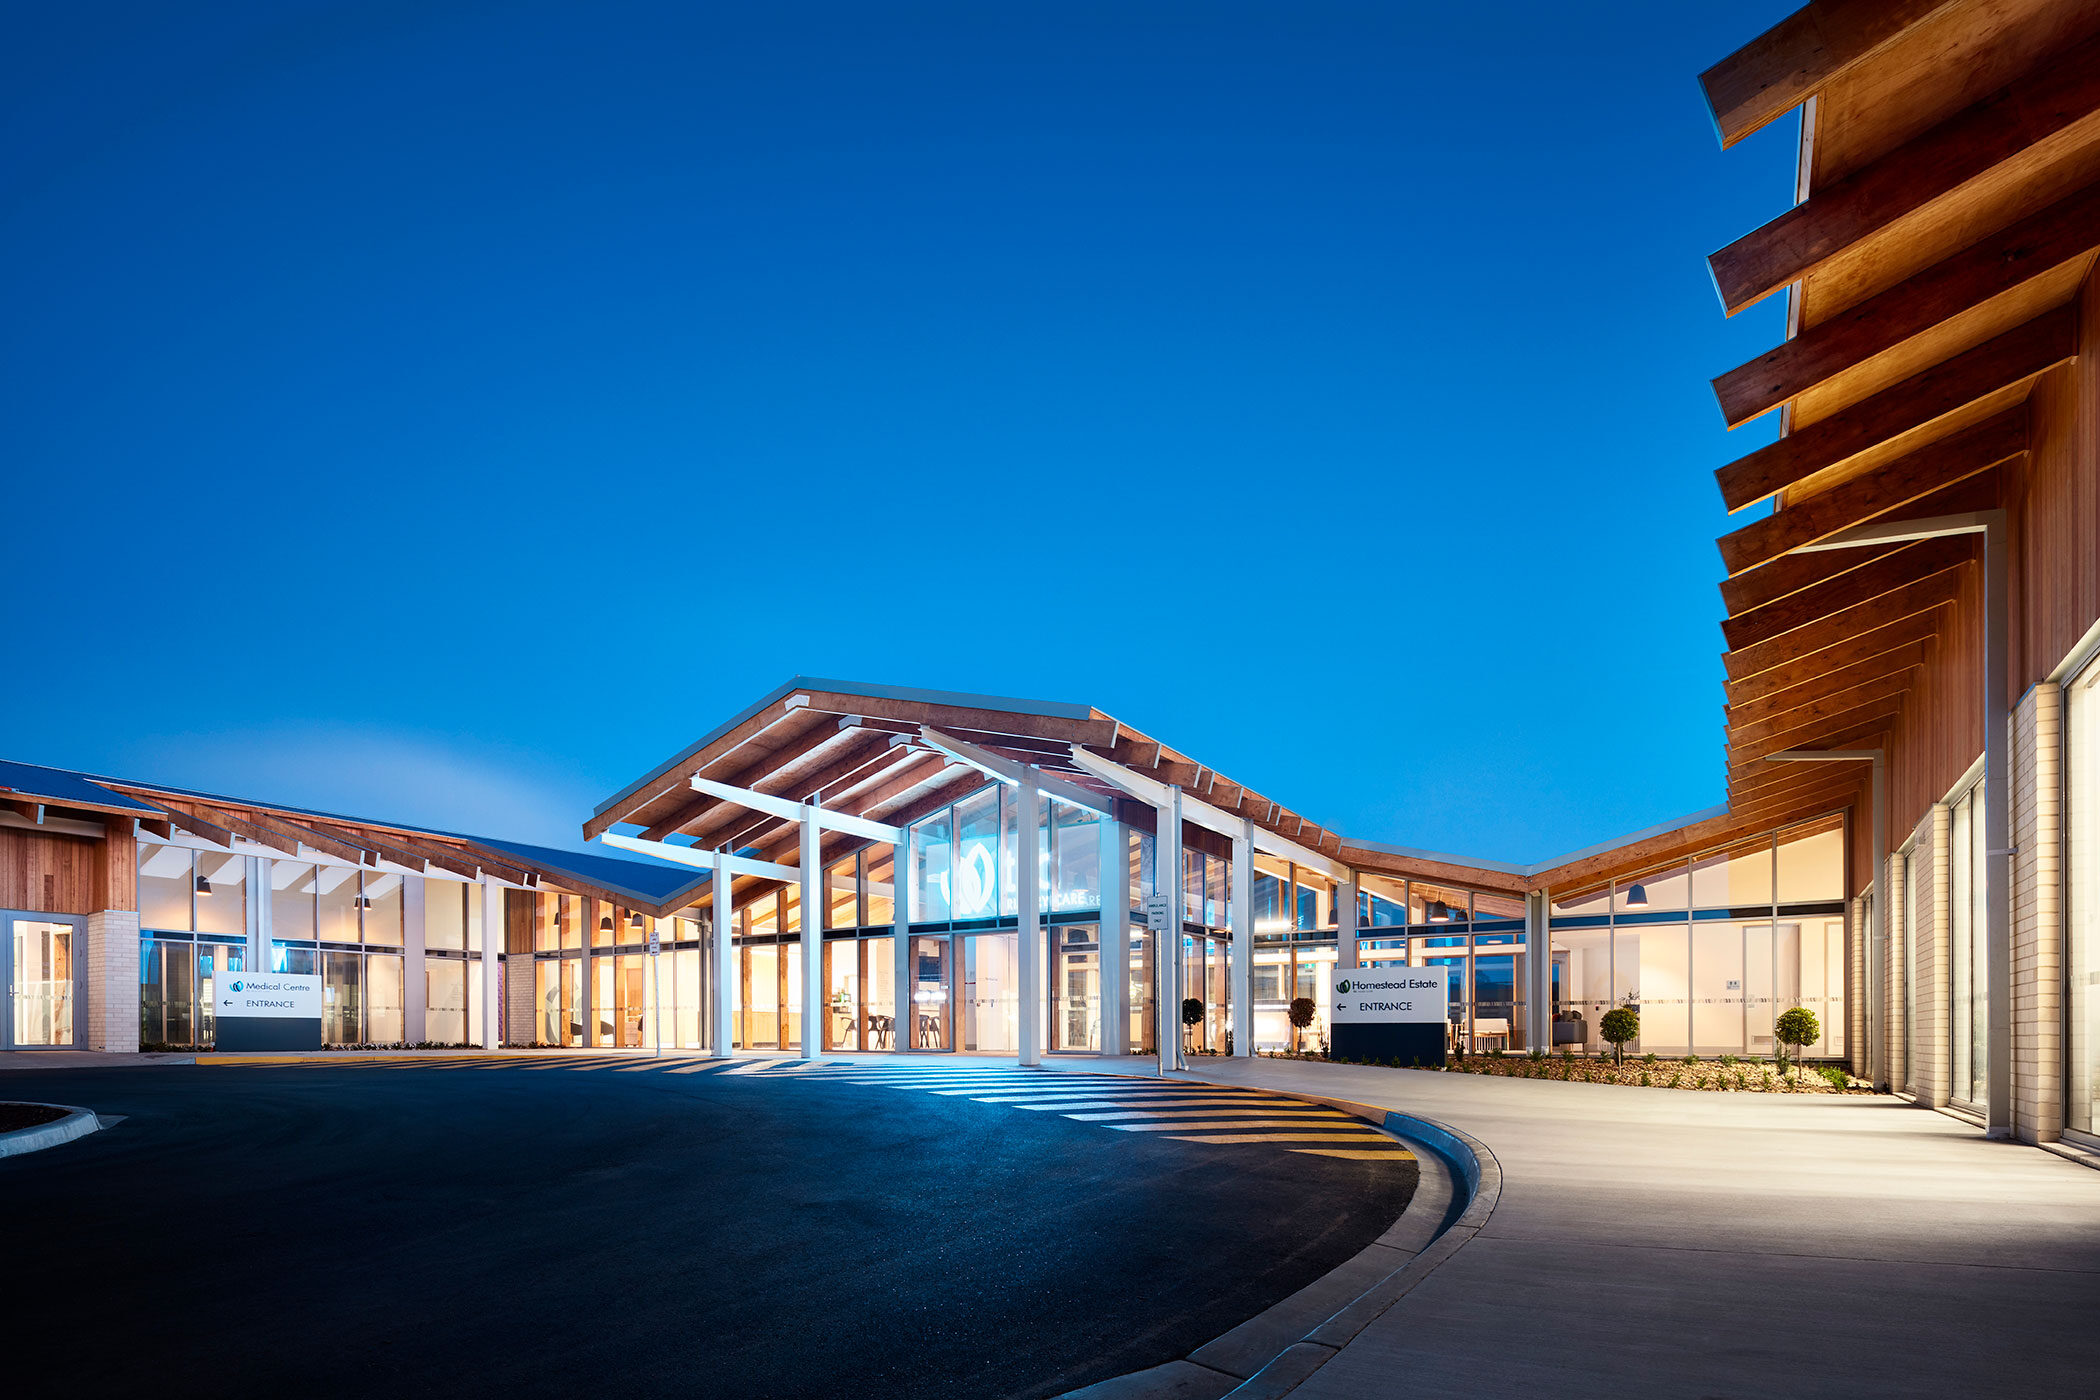 TLC Aged Care Homestead Estate dawn view across main building entry with timber beams and feature light signage - building photographer example / concept